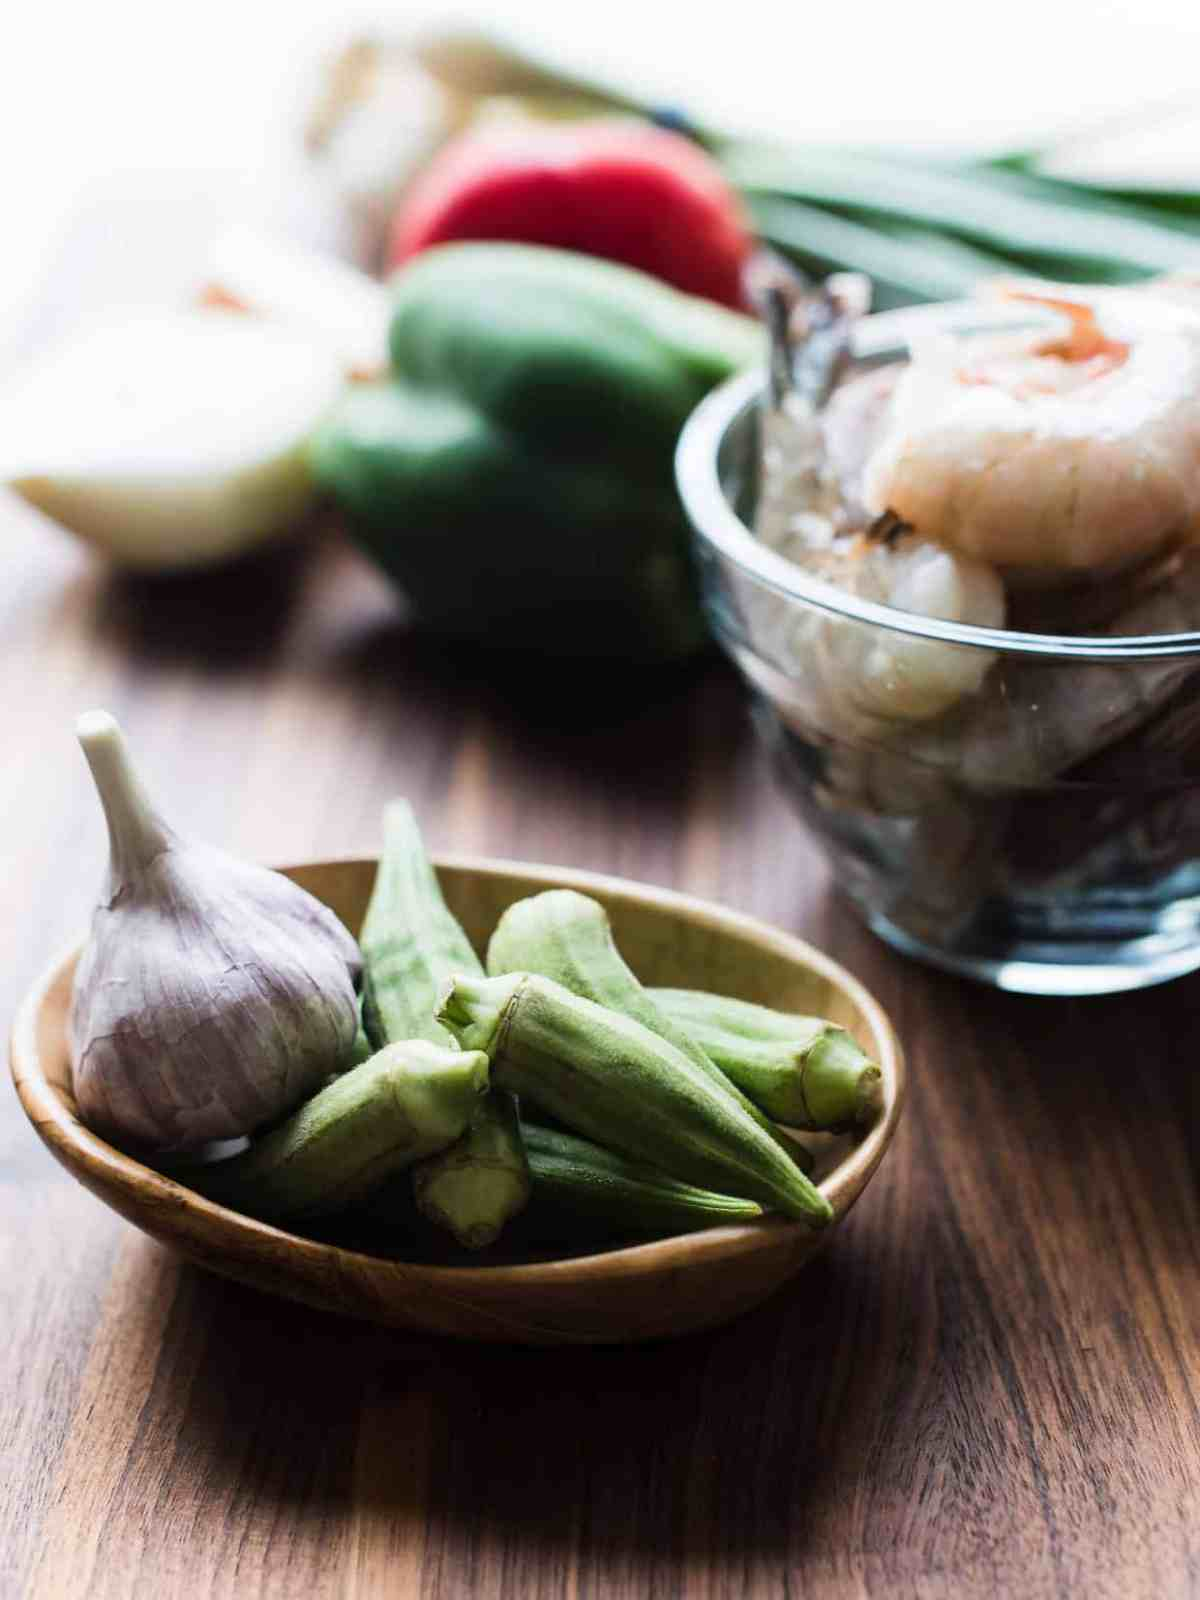 Bowl of okra and garlic on a wooden surface.